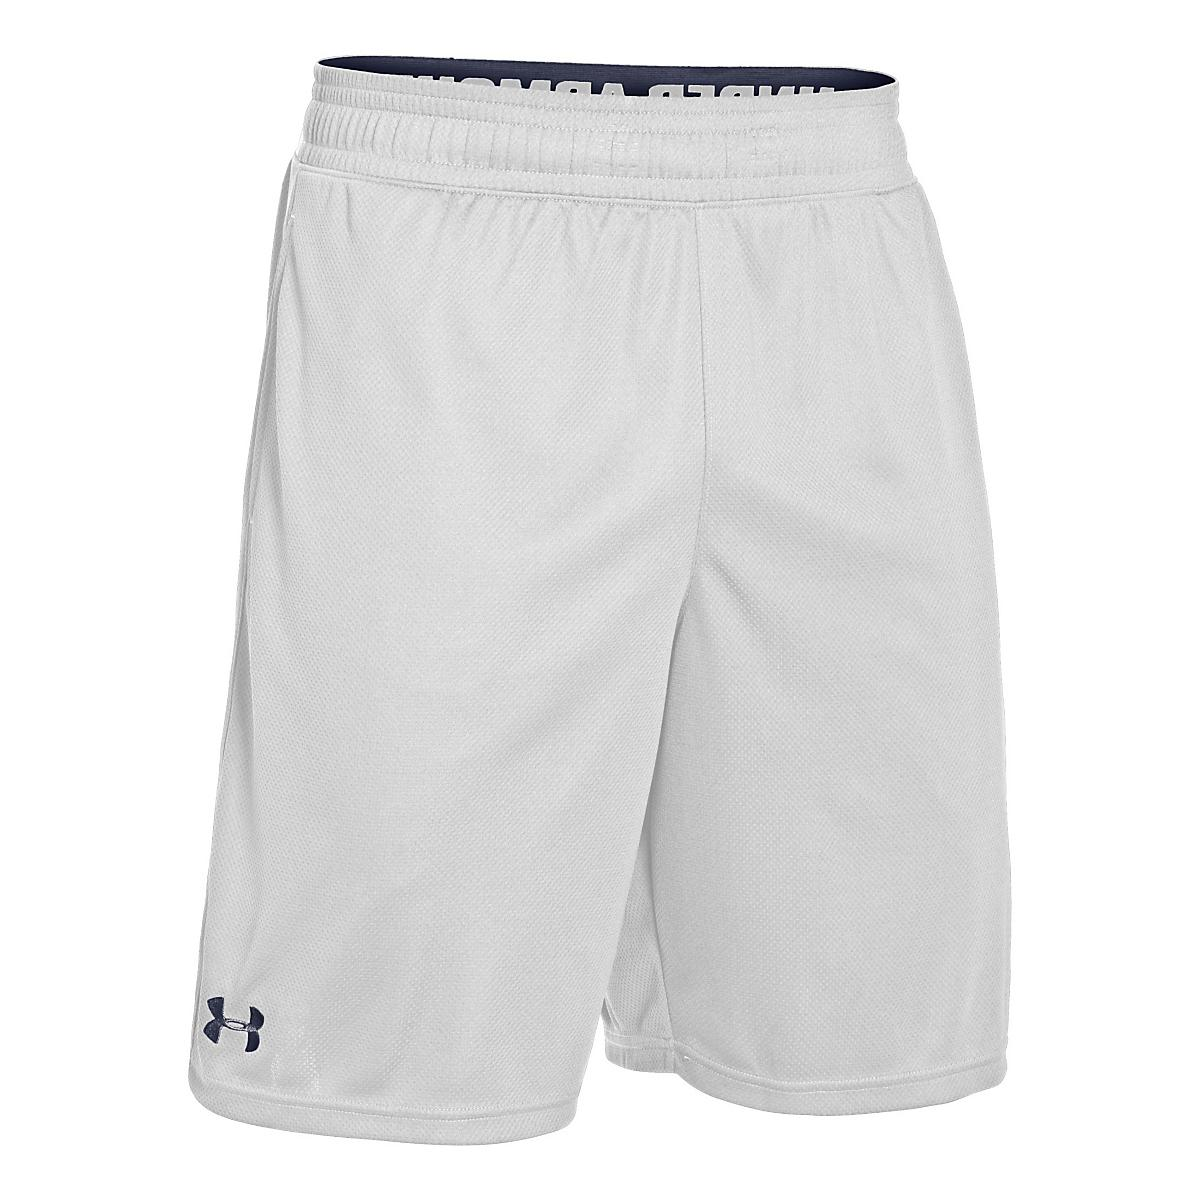 Men's Under Armour�Heatgear Reflex Short 10